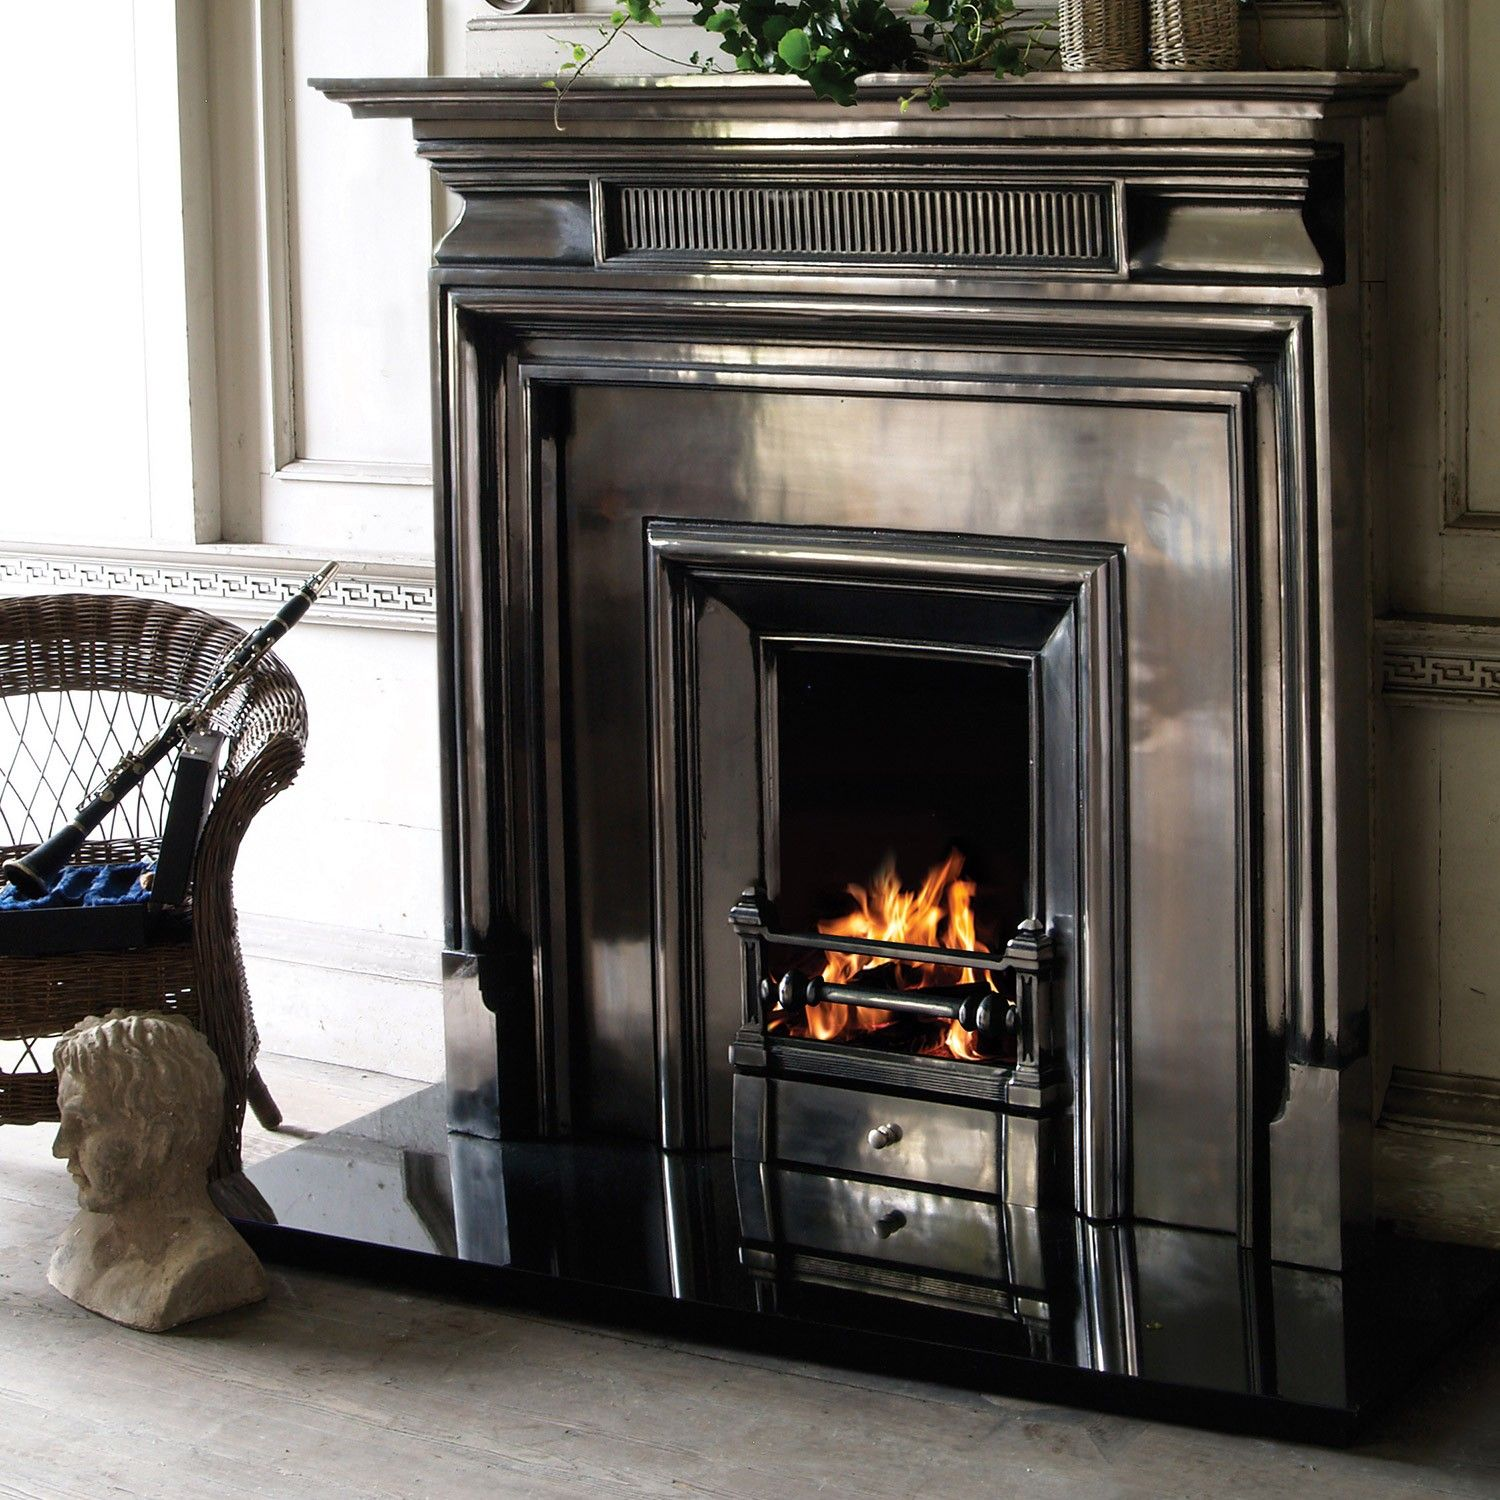 4667220e802bfb0d224d5a2f34a4be82 Top Result 50 Awesome Steel Outdoor Fireplace Gallery 2018 Hiw6